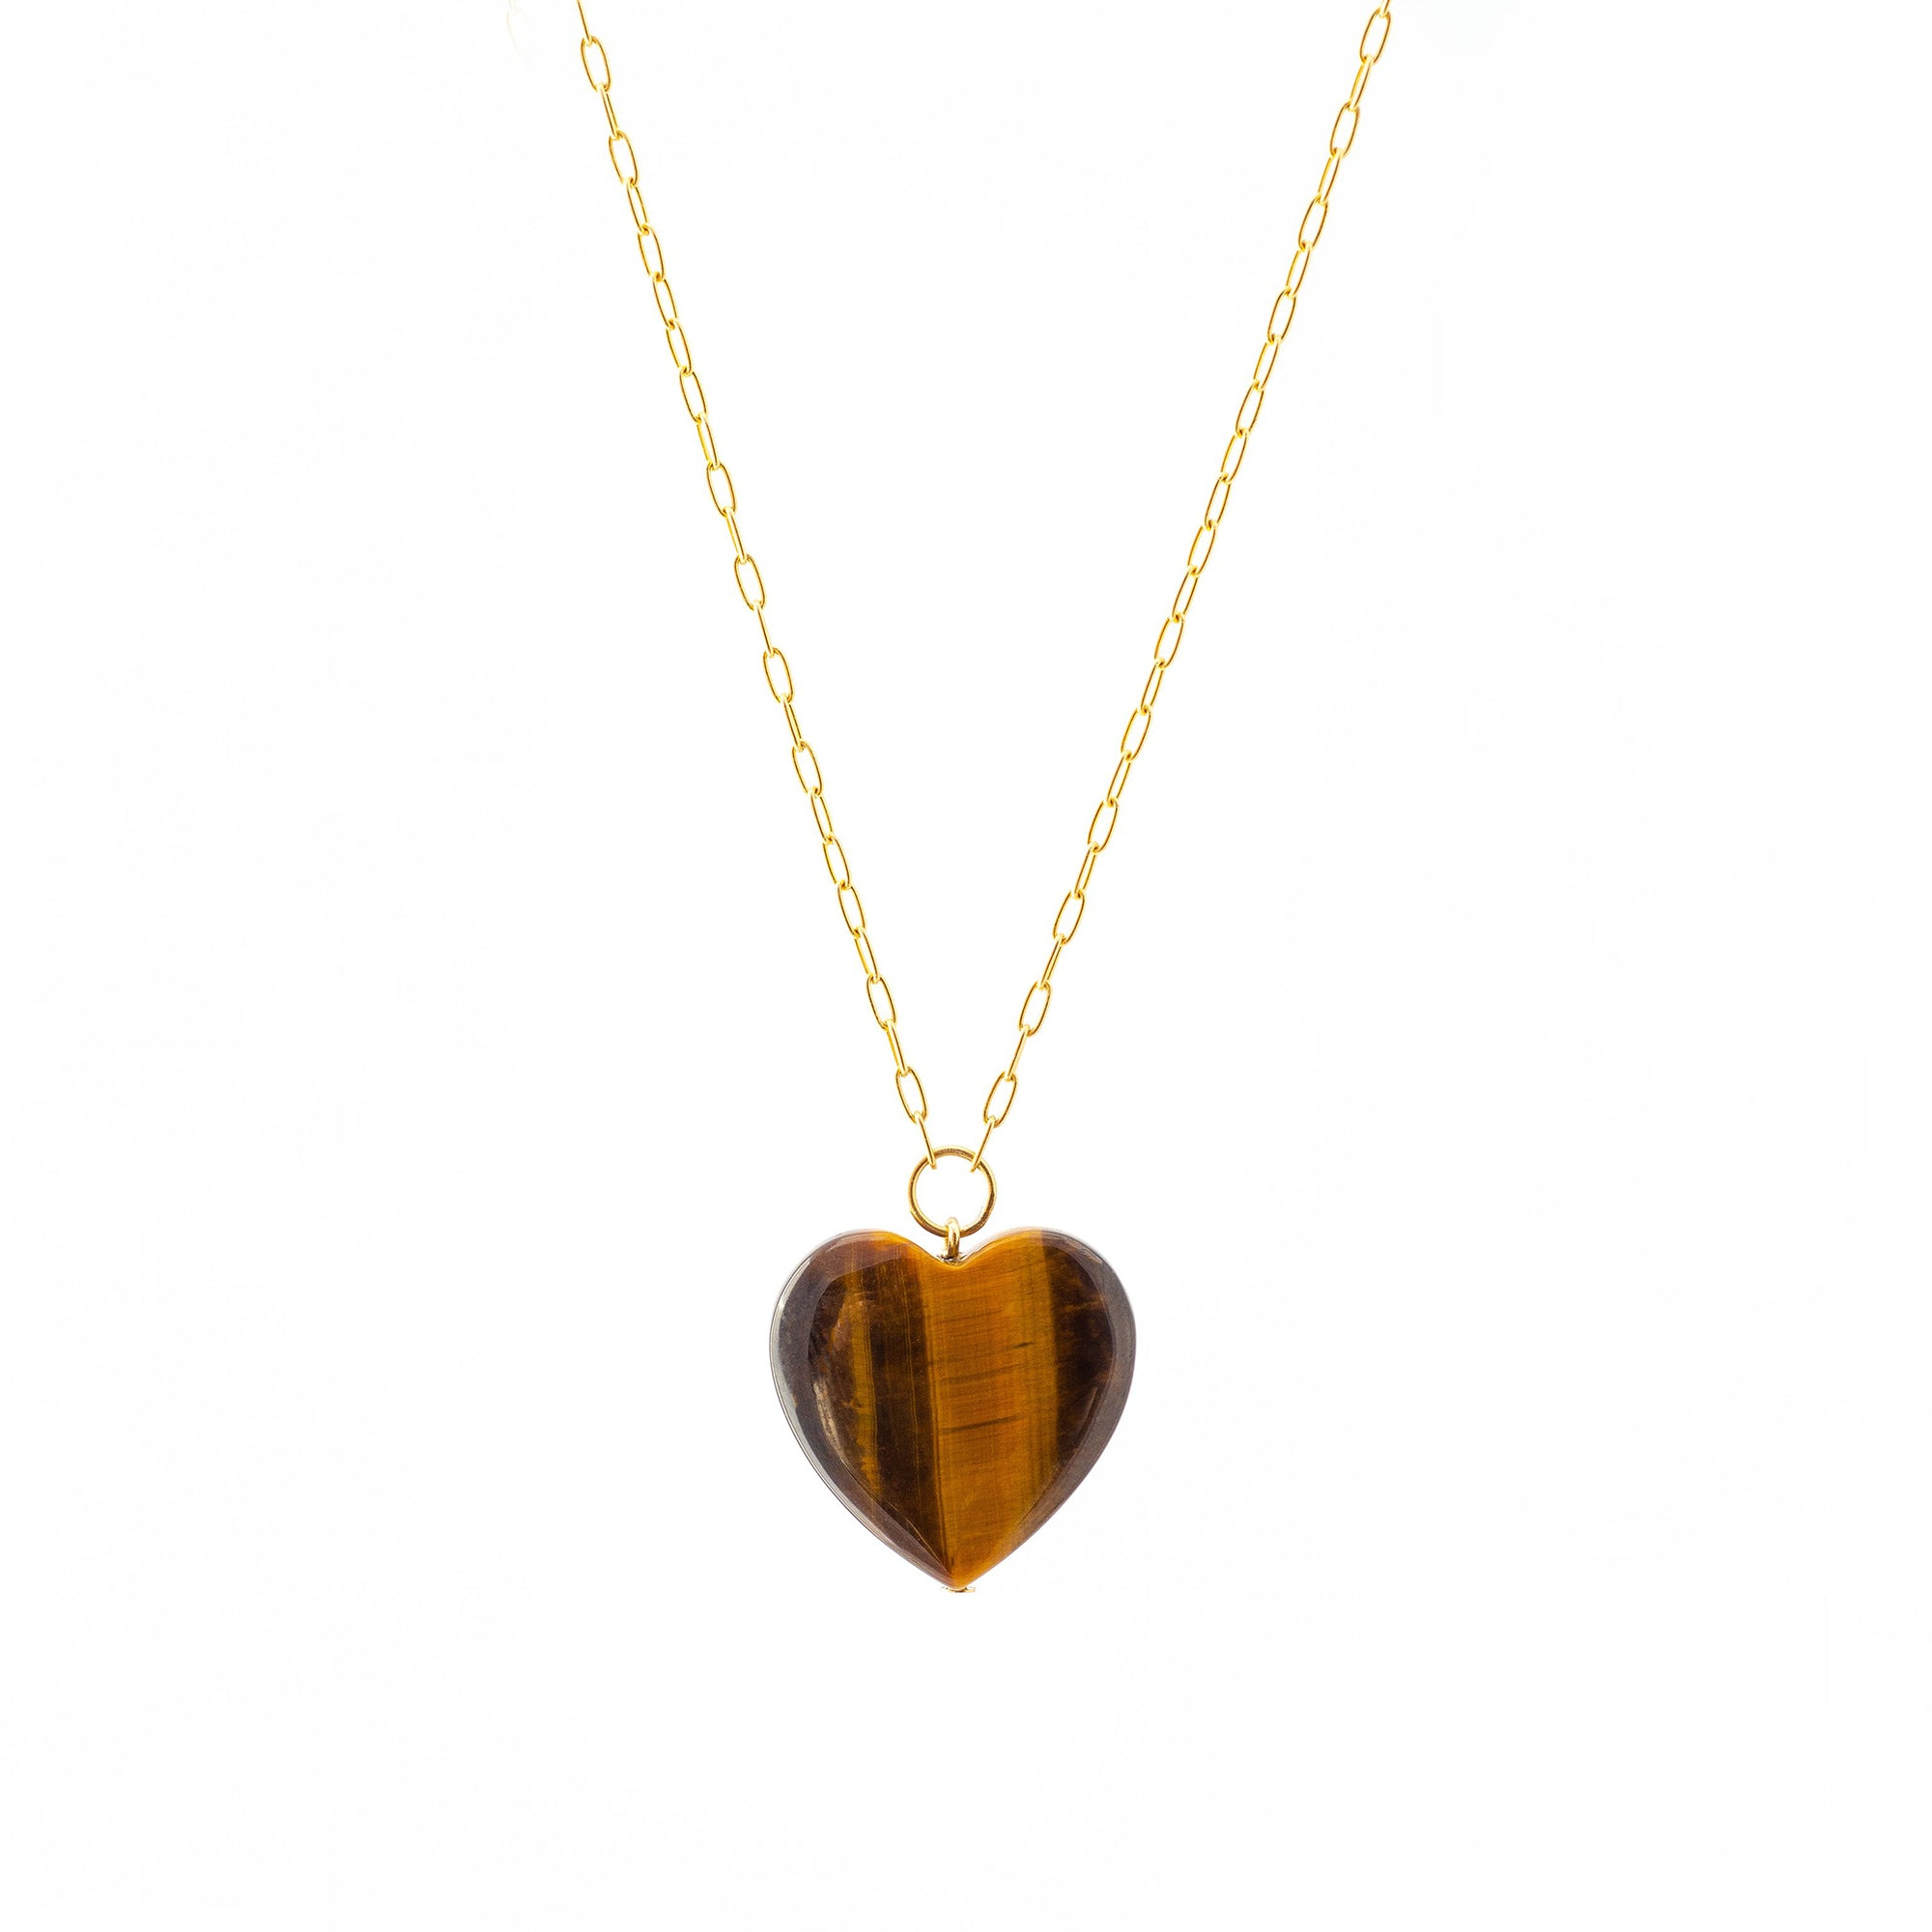 Haute Victoire Heart Necklace - Tiger's Eye - Necklaces - Broken English Jewelry